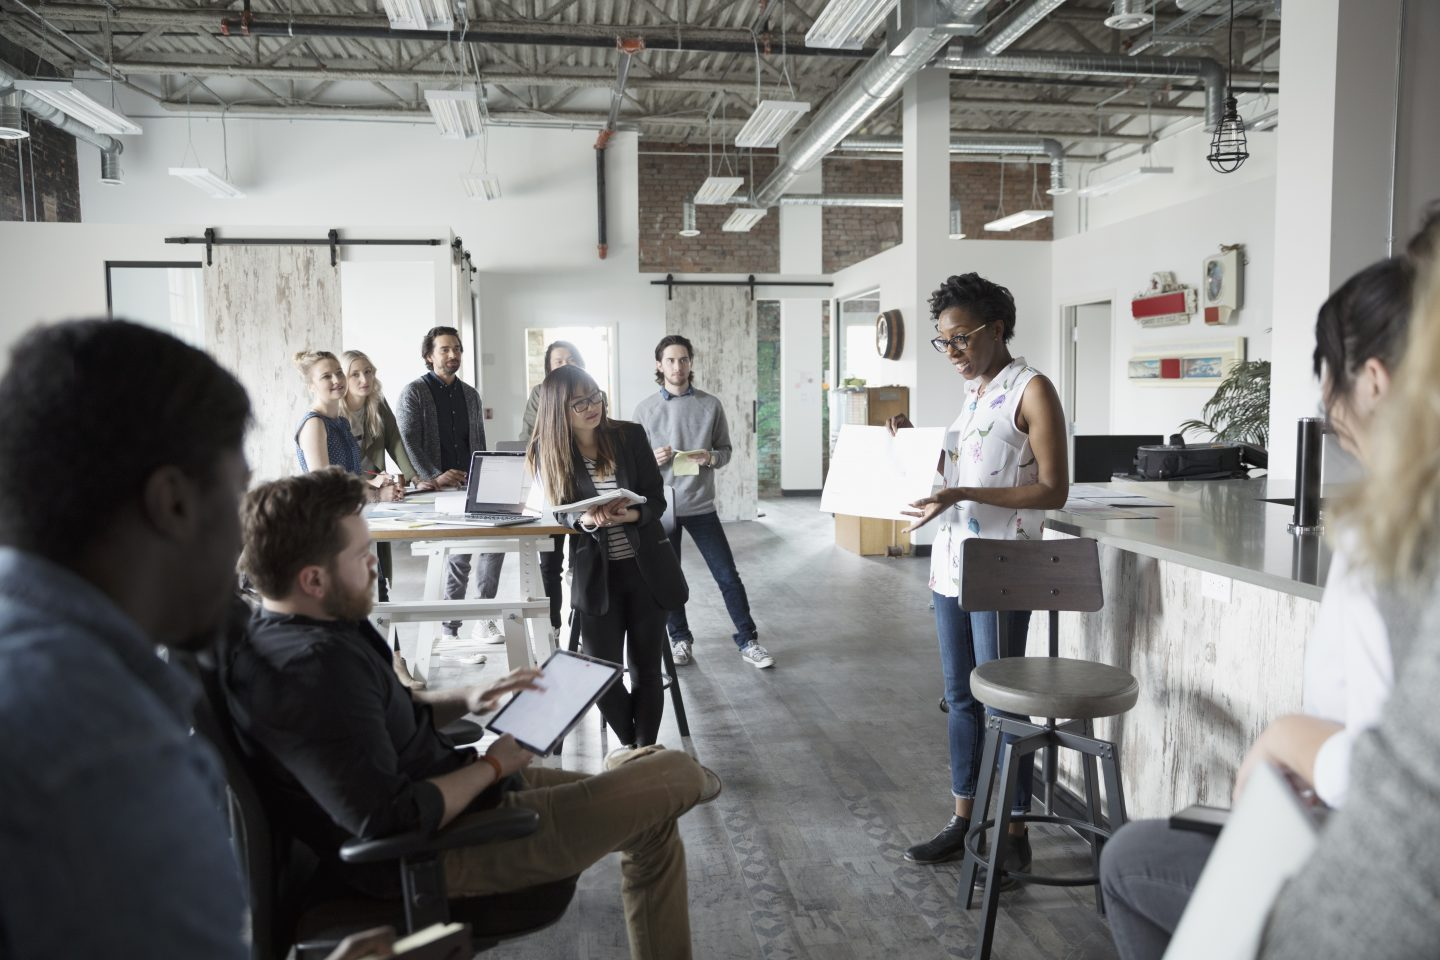 Female designer leading meeting, showing blueprint in meeting in open plan loft office